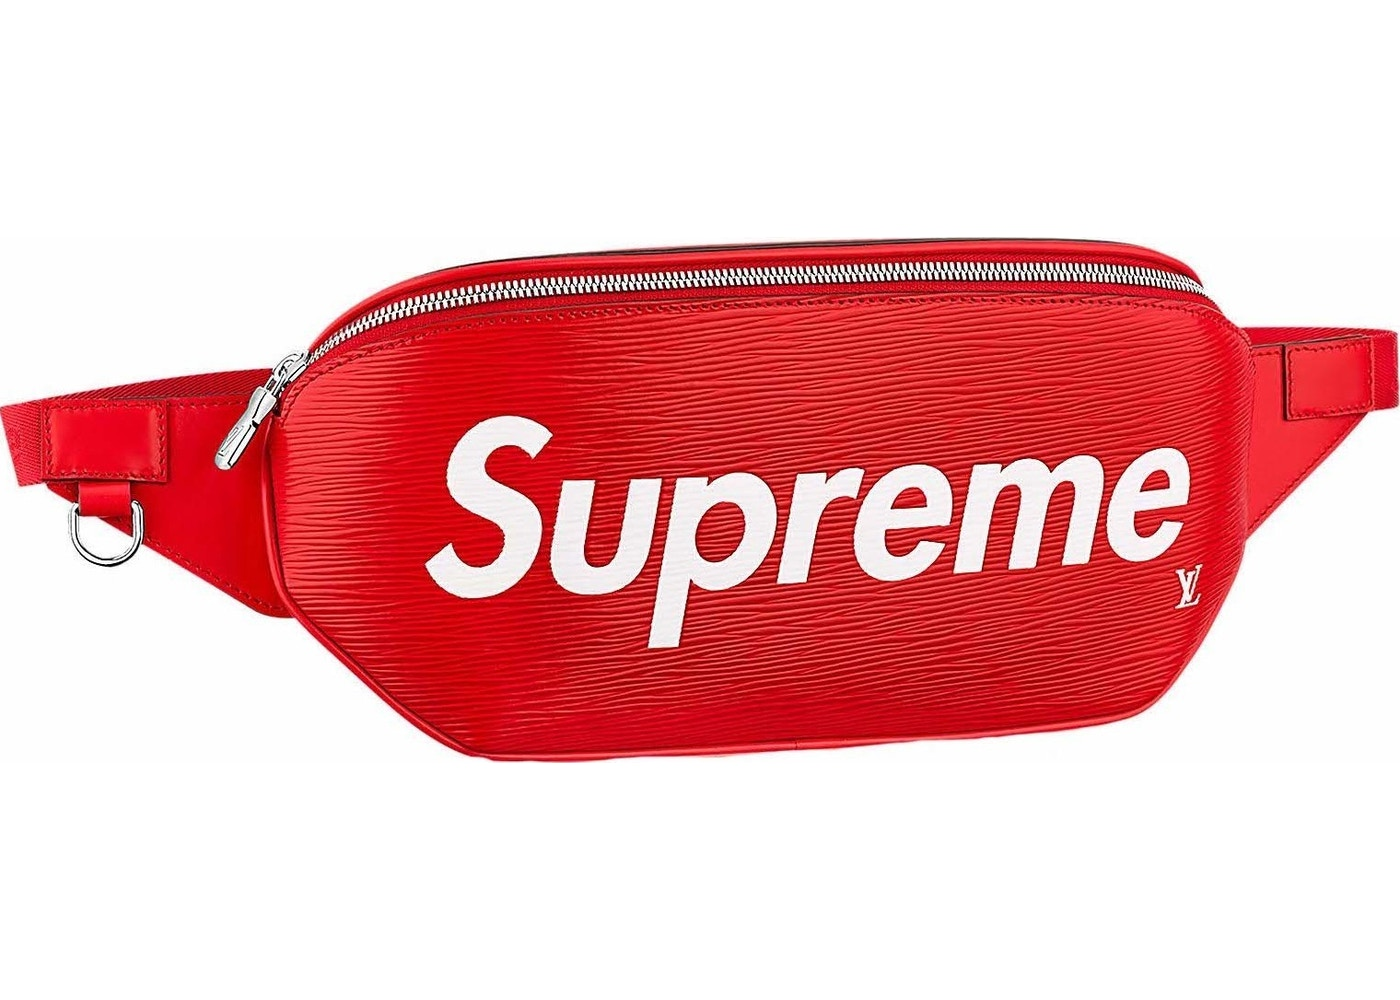 9e9b4972 Louis Vuitton x Supreme Bumbag Epi Red